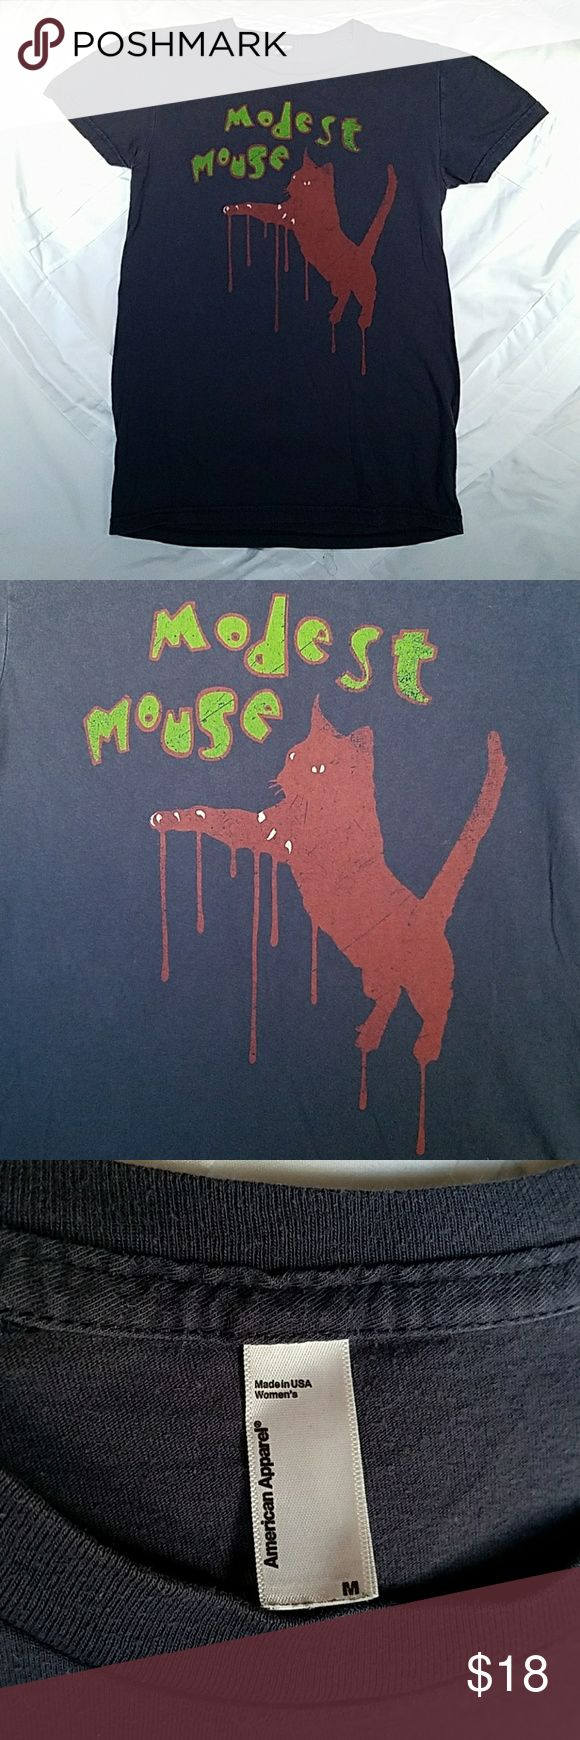 Modest Mouse fitted tour tee Navy tee in good condition  Got at a show Tops Tees - Short Sleeve